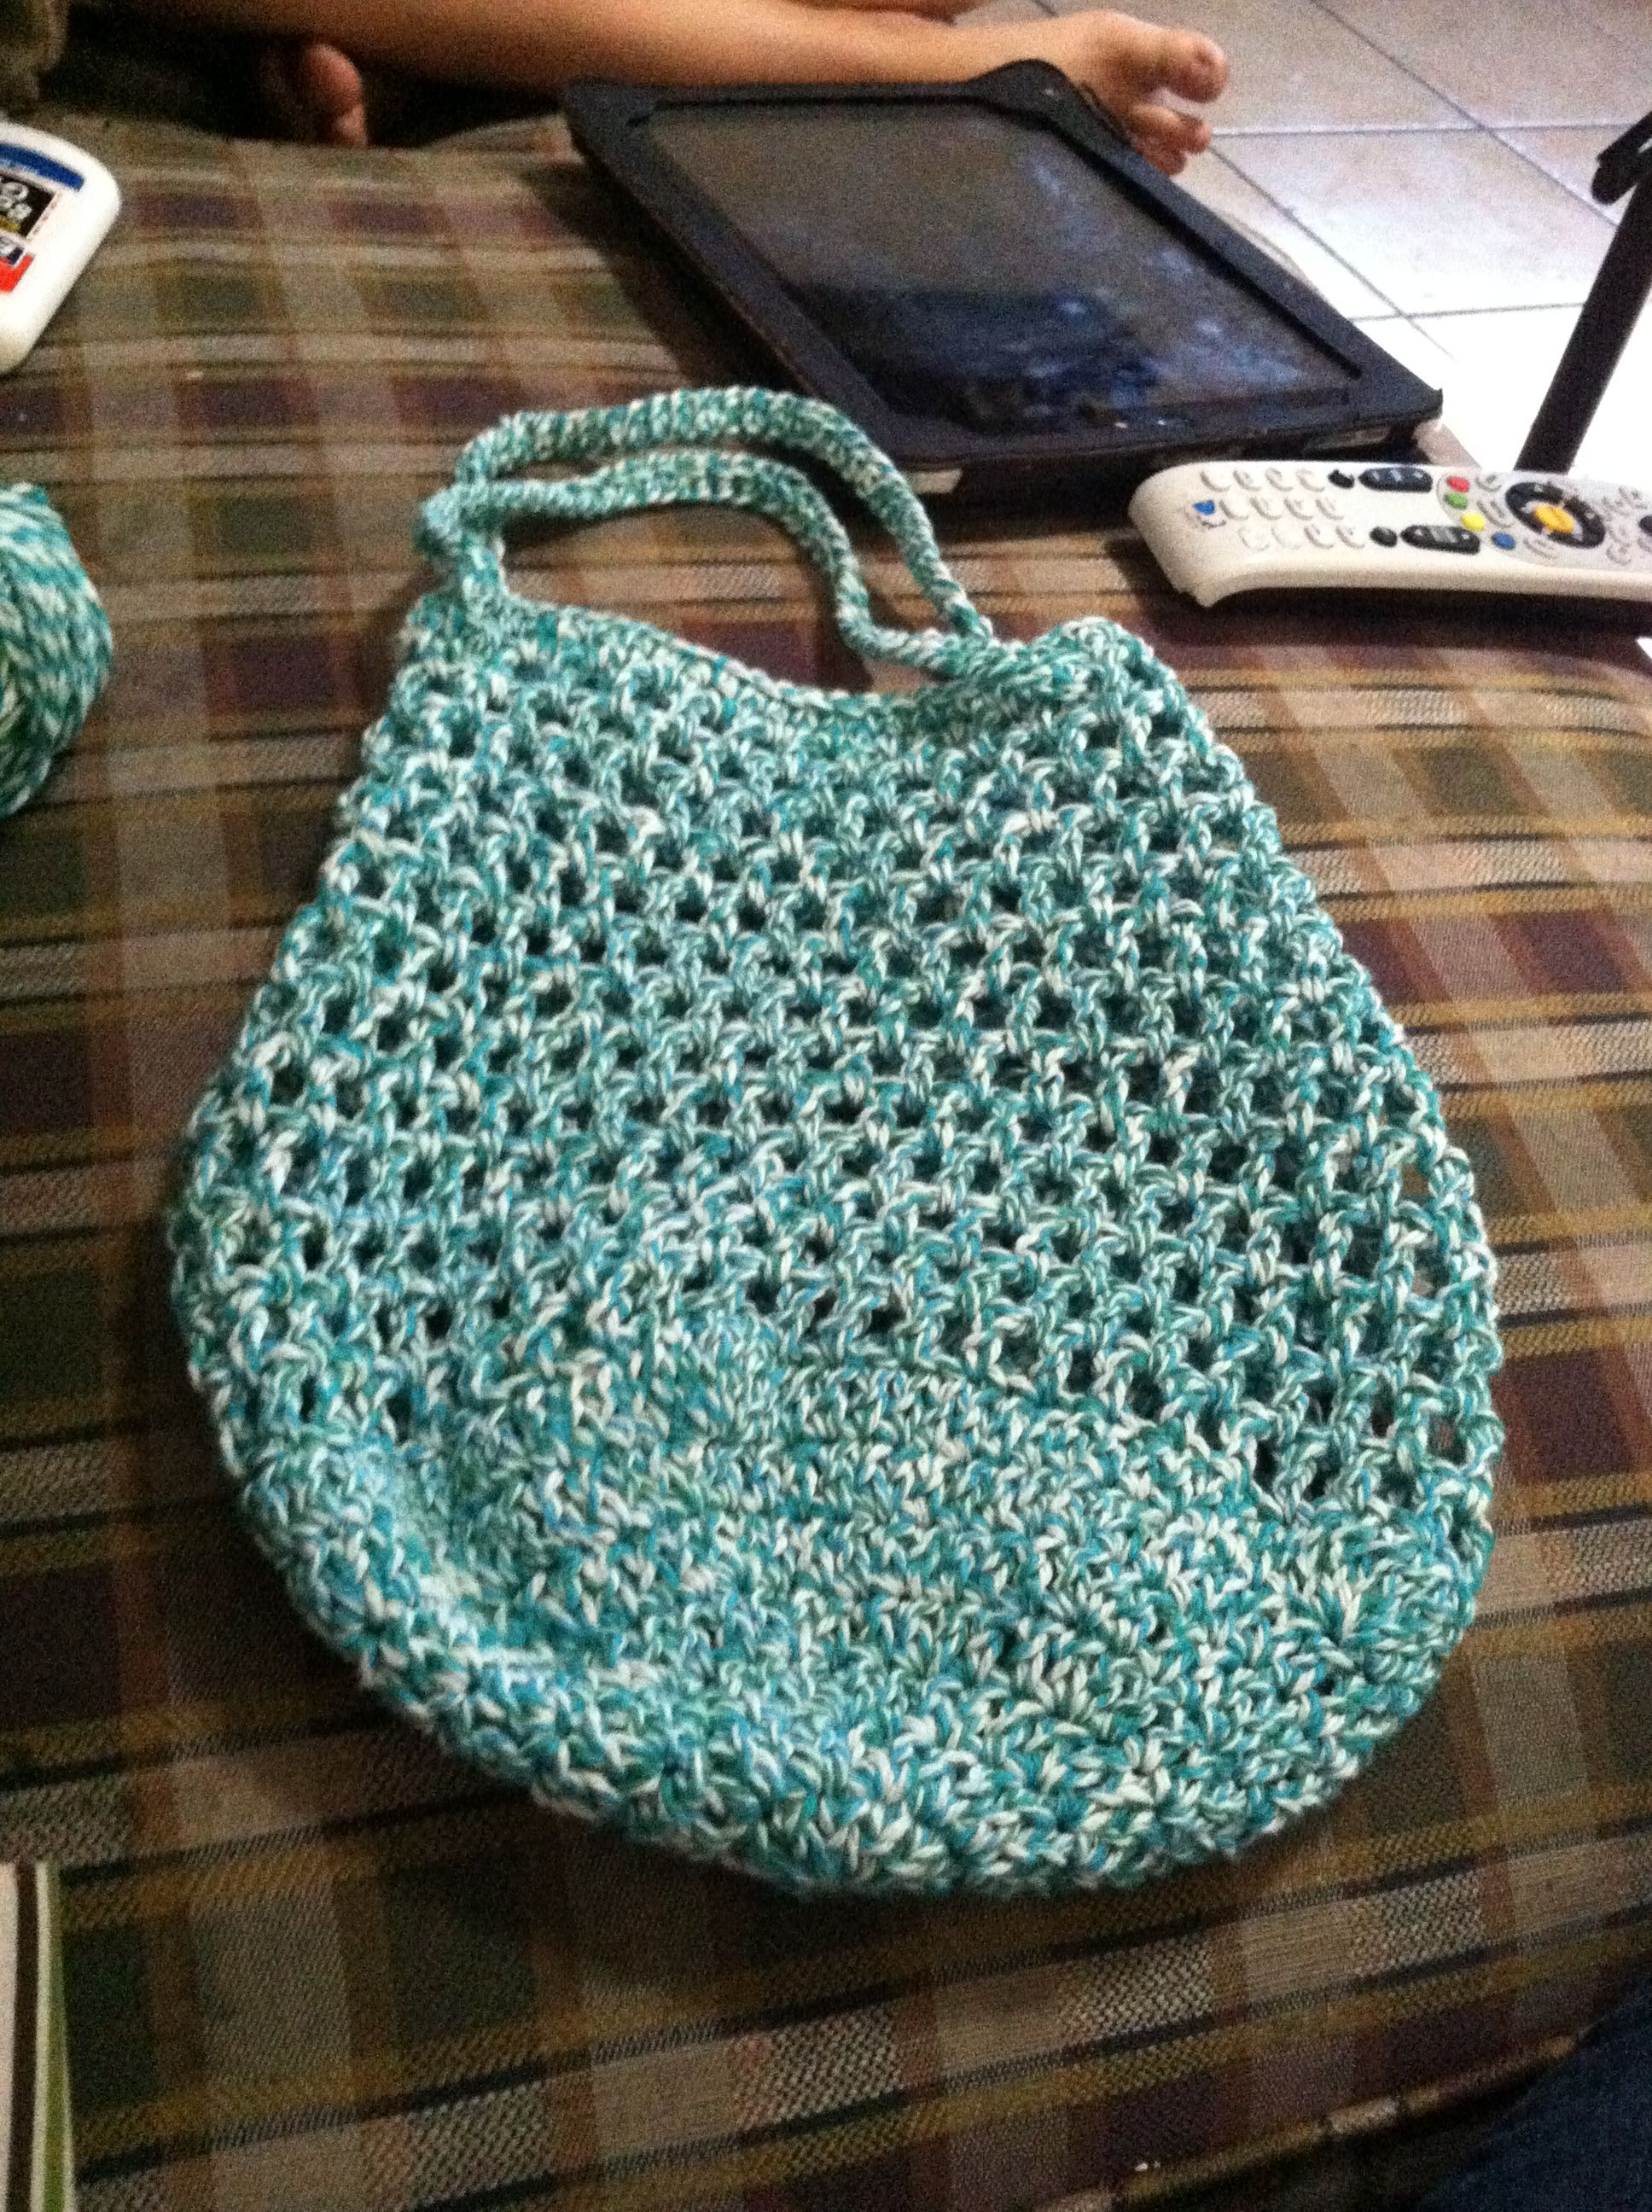 Crochet Lunch Bag Pattern : Crocheted lunch bag. Crocheting - Bags & purses Pinterest